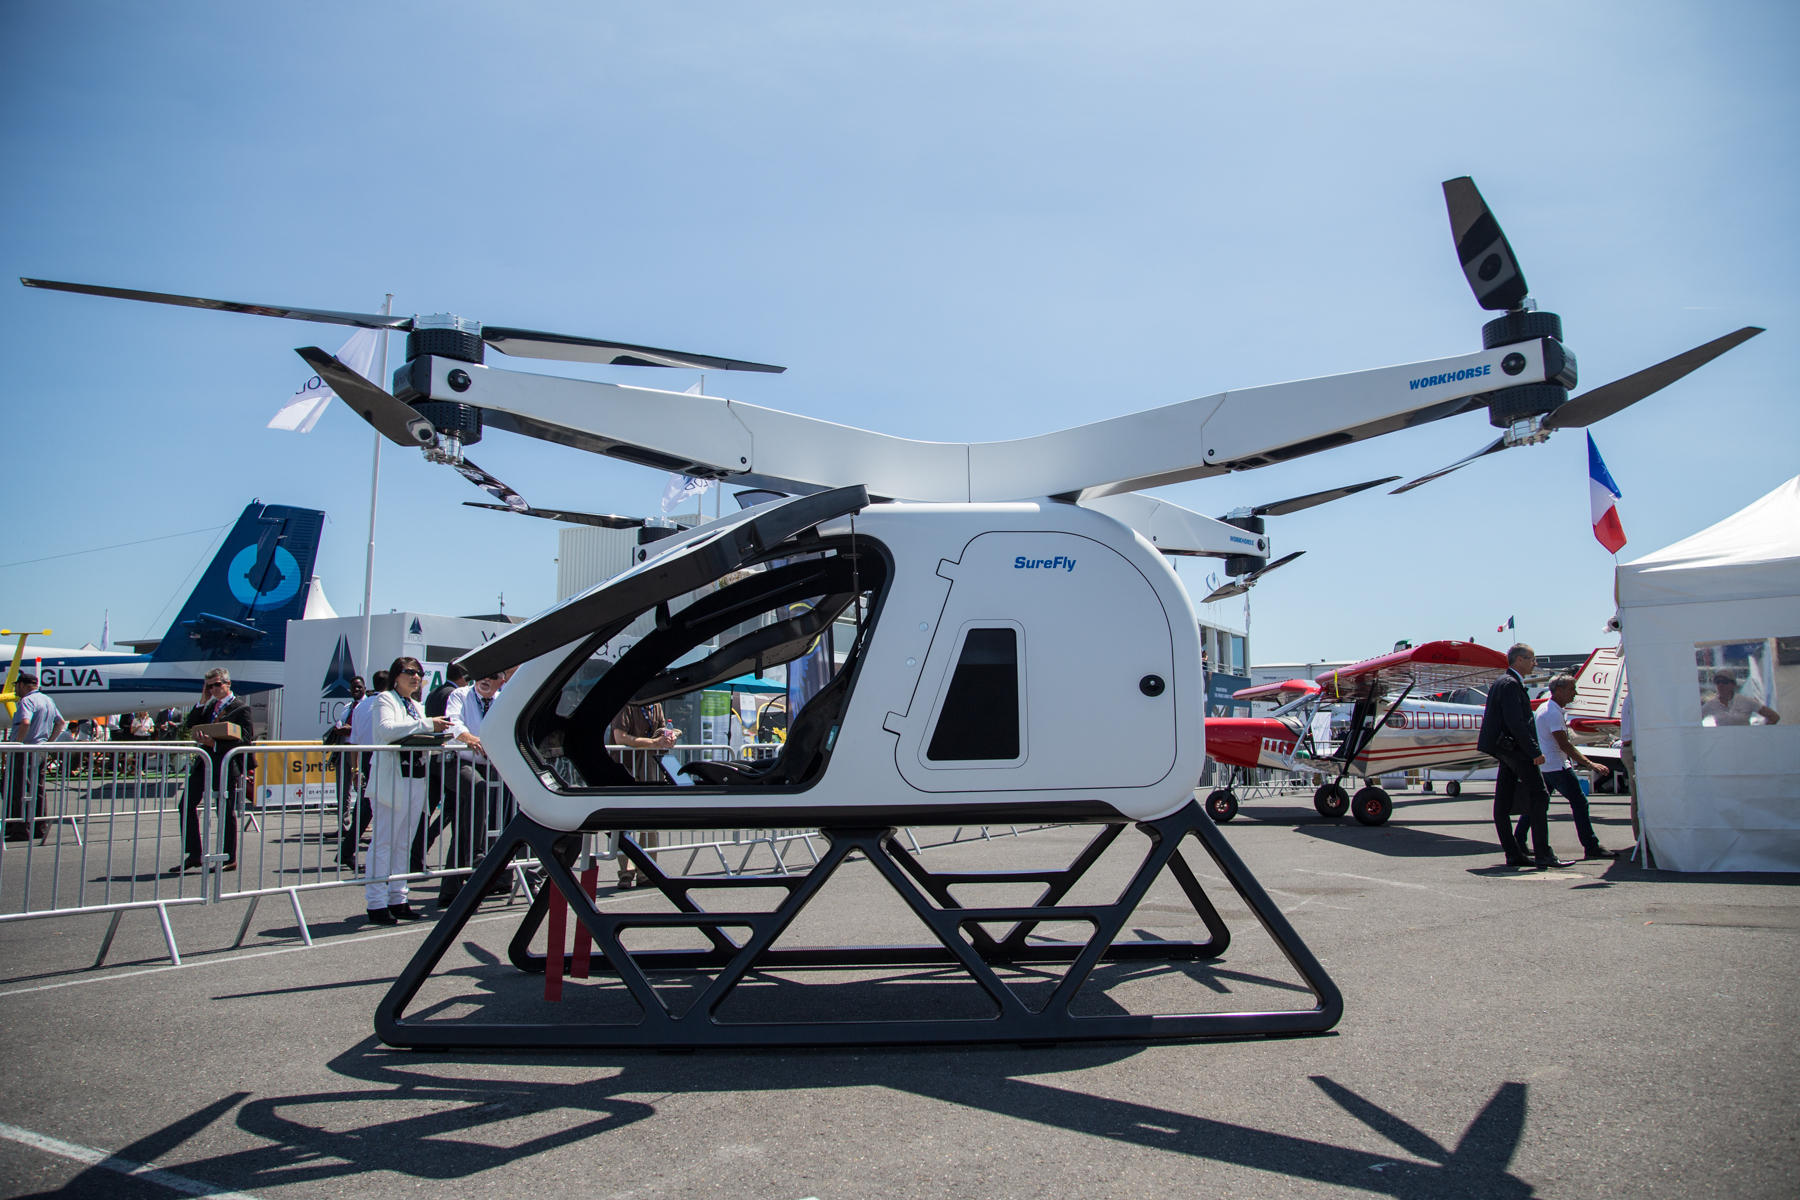 workhorse-surefly-personal-helicopter-paris-airshow-5